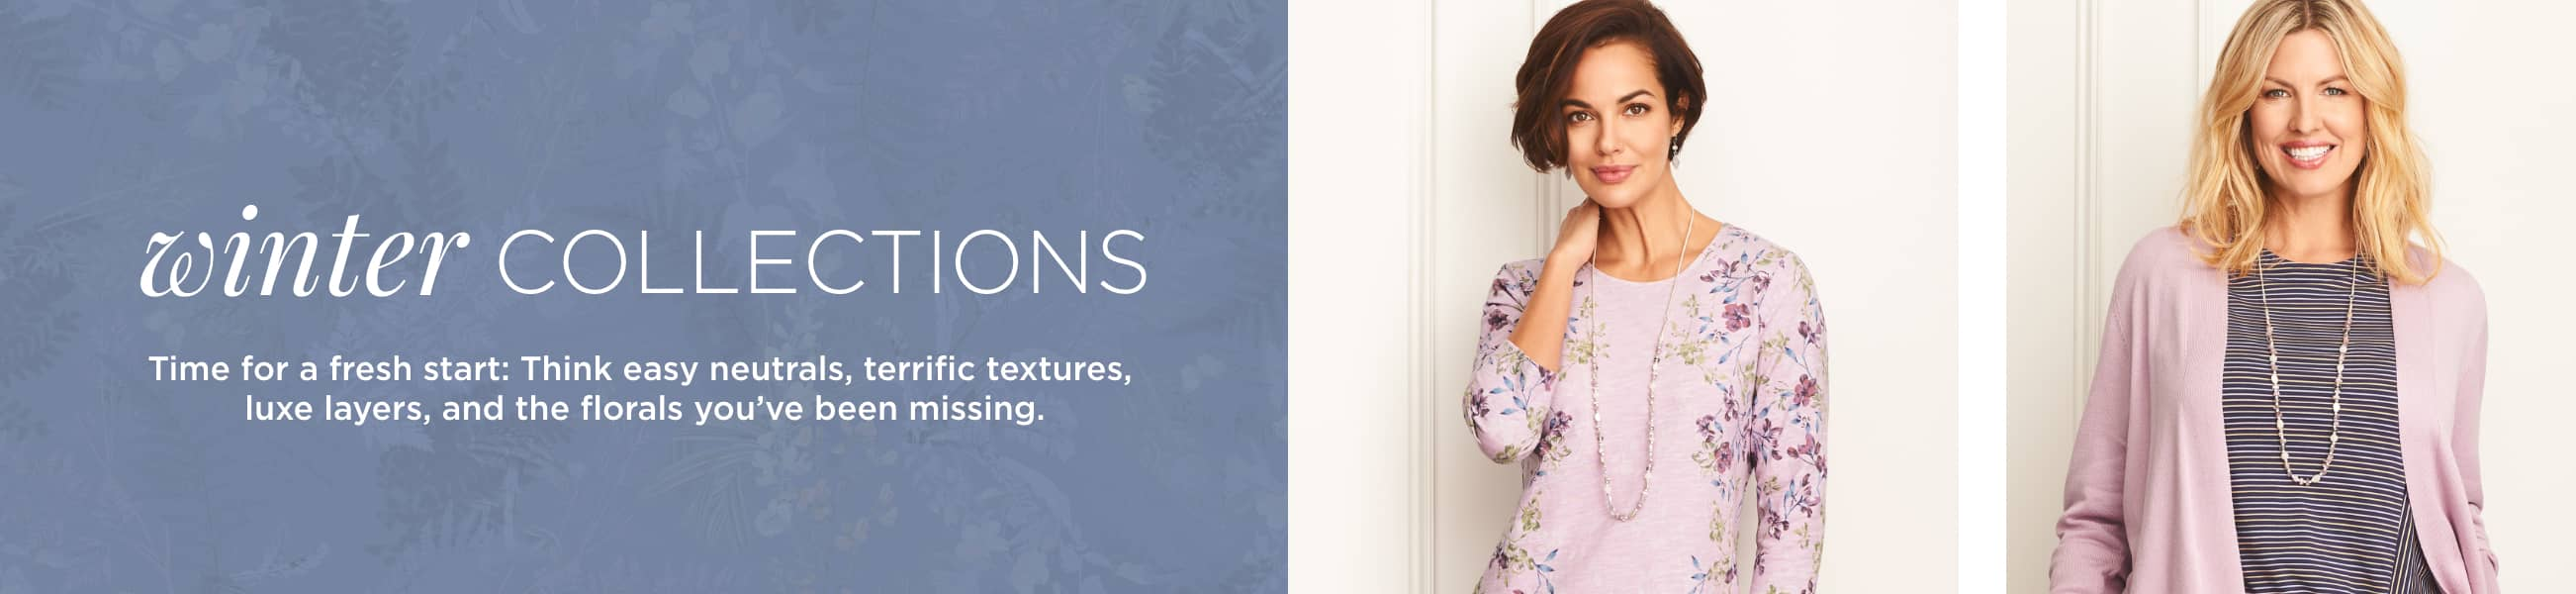 Winter Collections. Time for a fresh start: think easy neutrals, terrific textures, luxe layers, and the florals you've been missing.